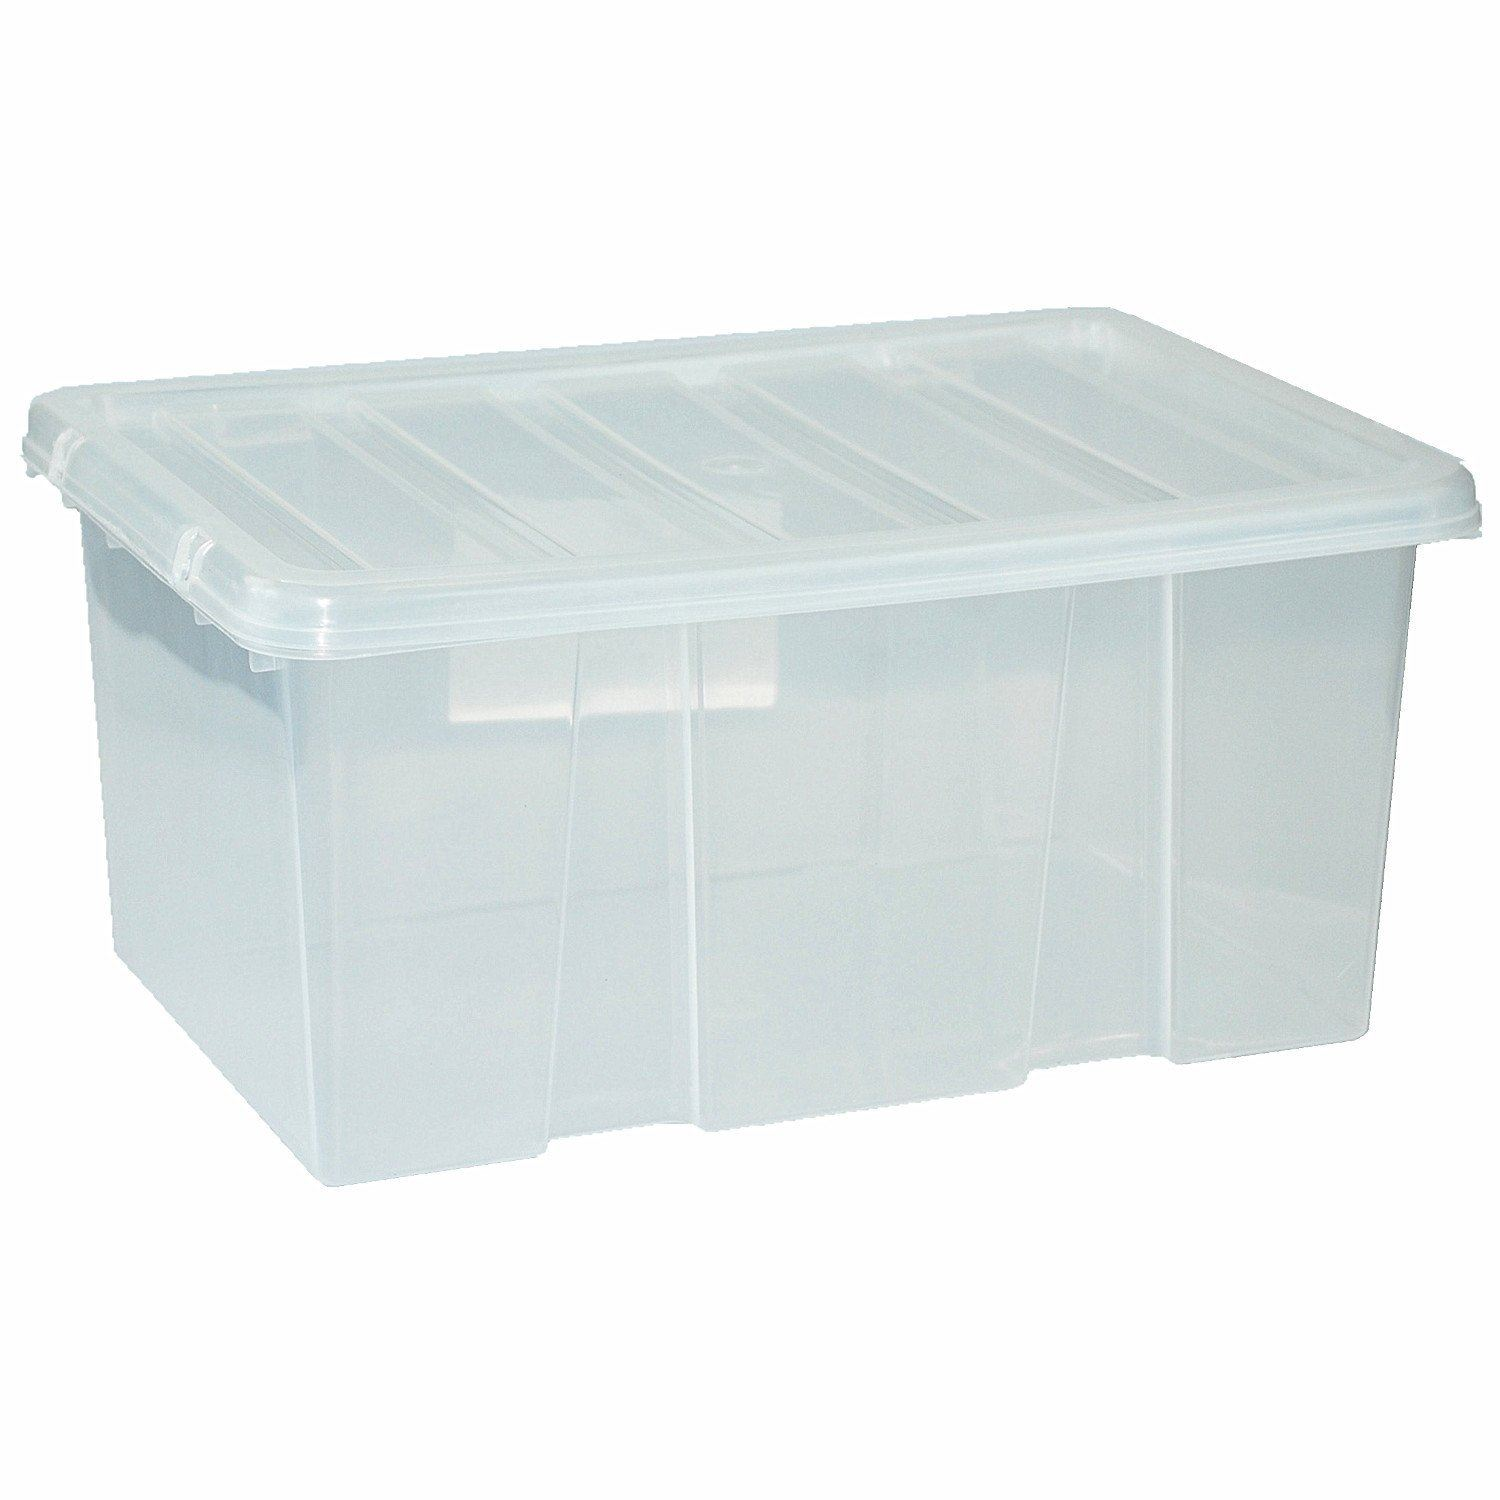 Large Plastic Storage Boxes Large Plastic Storage Clear Box With Clear Lid Container